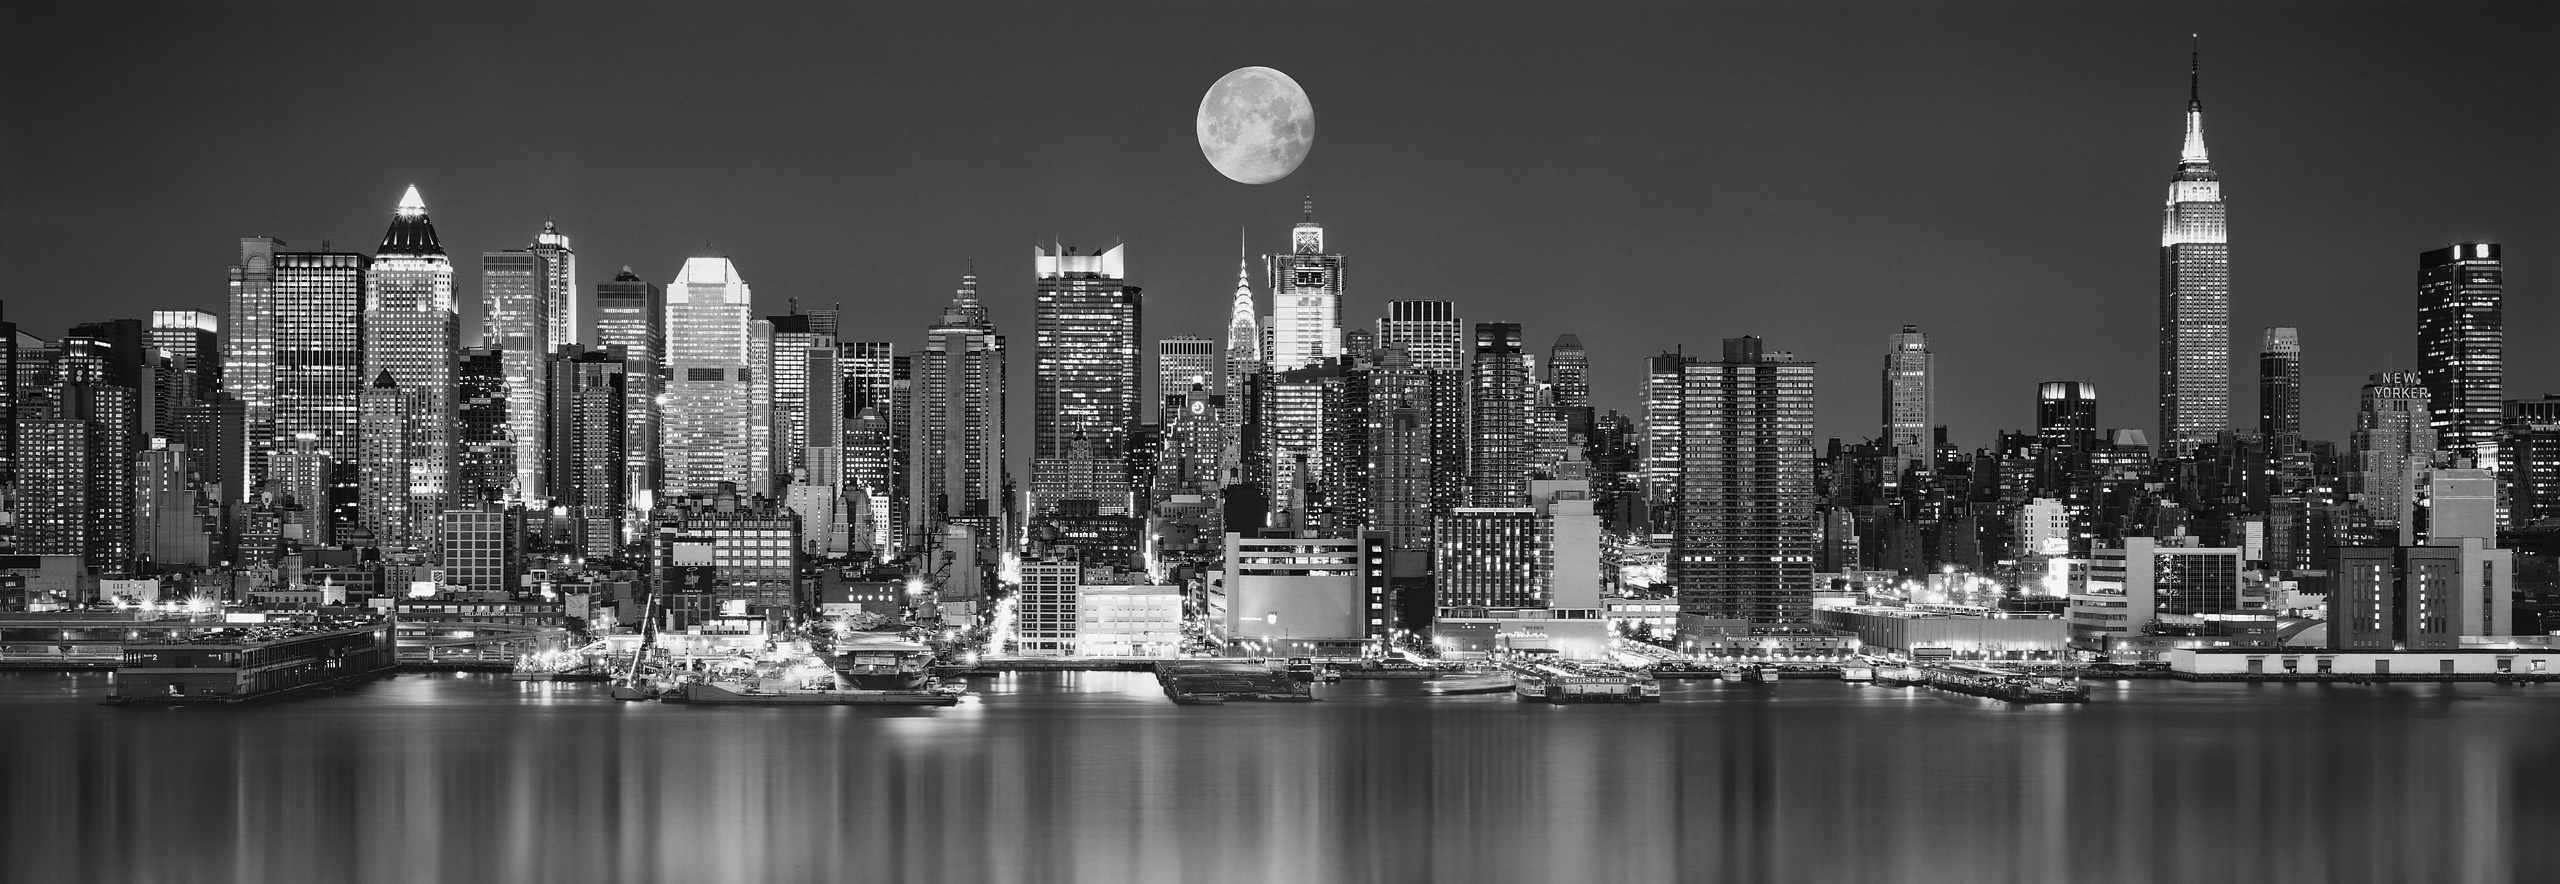 Moon over Manhattan (Black and White) with reflections and reflections) in the Hudson River